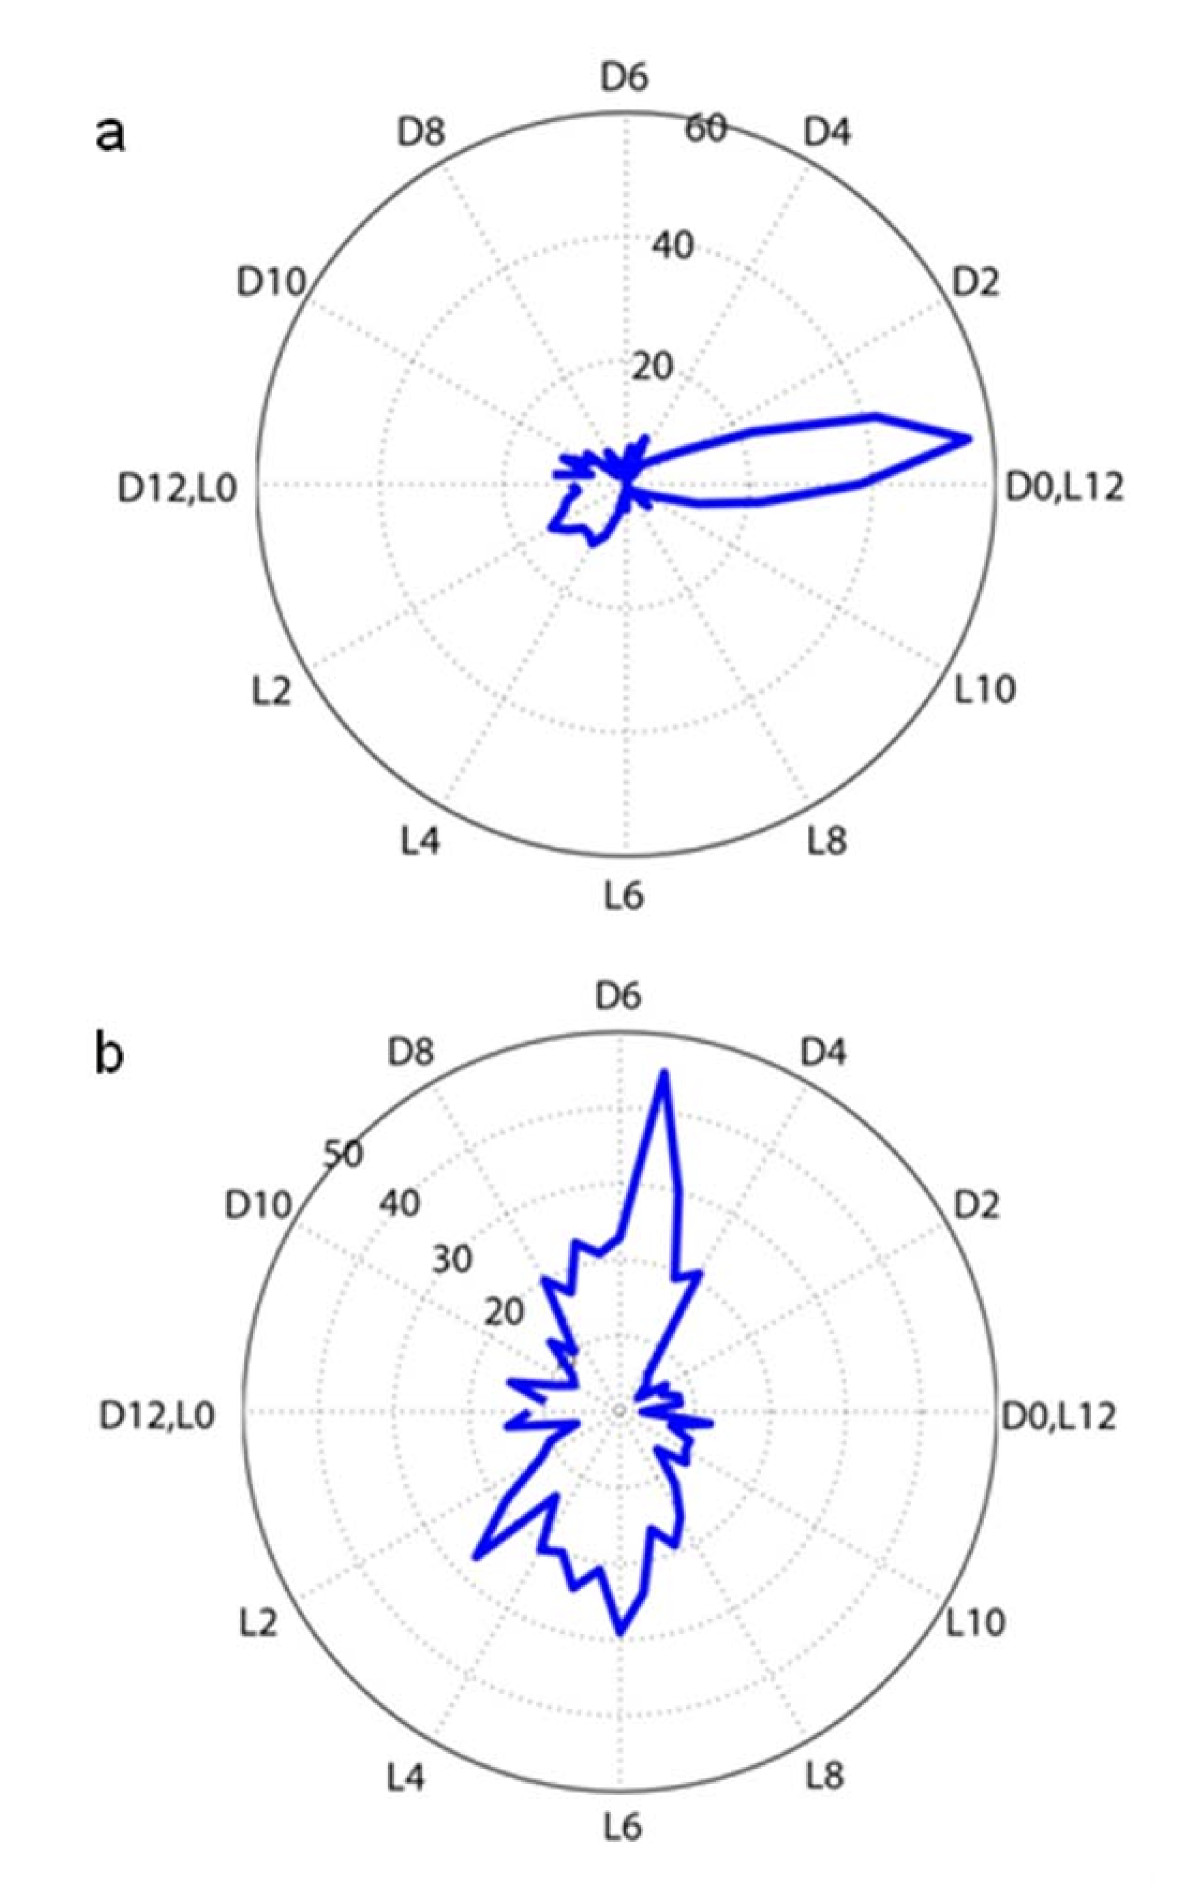 http://static-content.springer.com/image/art%3A10.1186%2F1471-2164-10-226/MediaObjects/12864_2008_Article_2110_Fig5_HTML.jpg